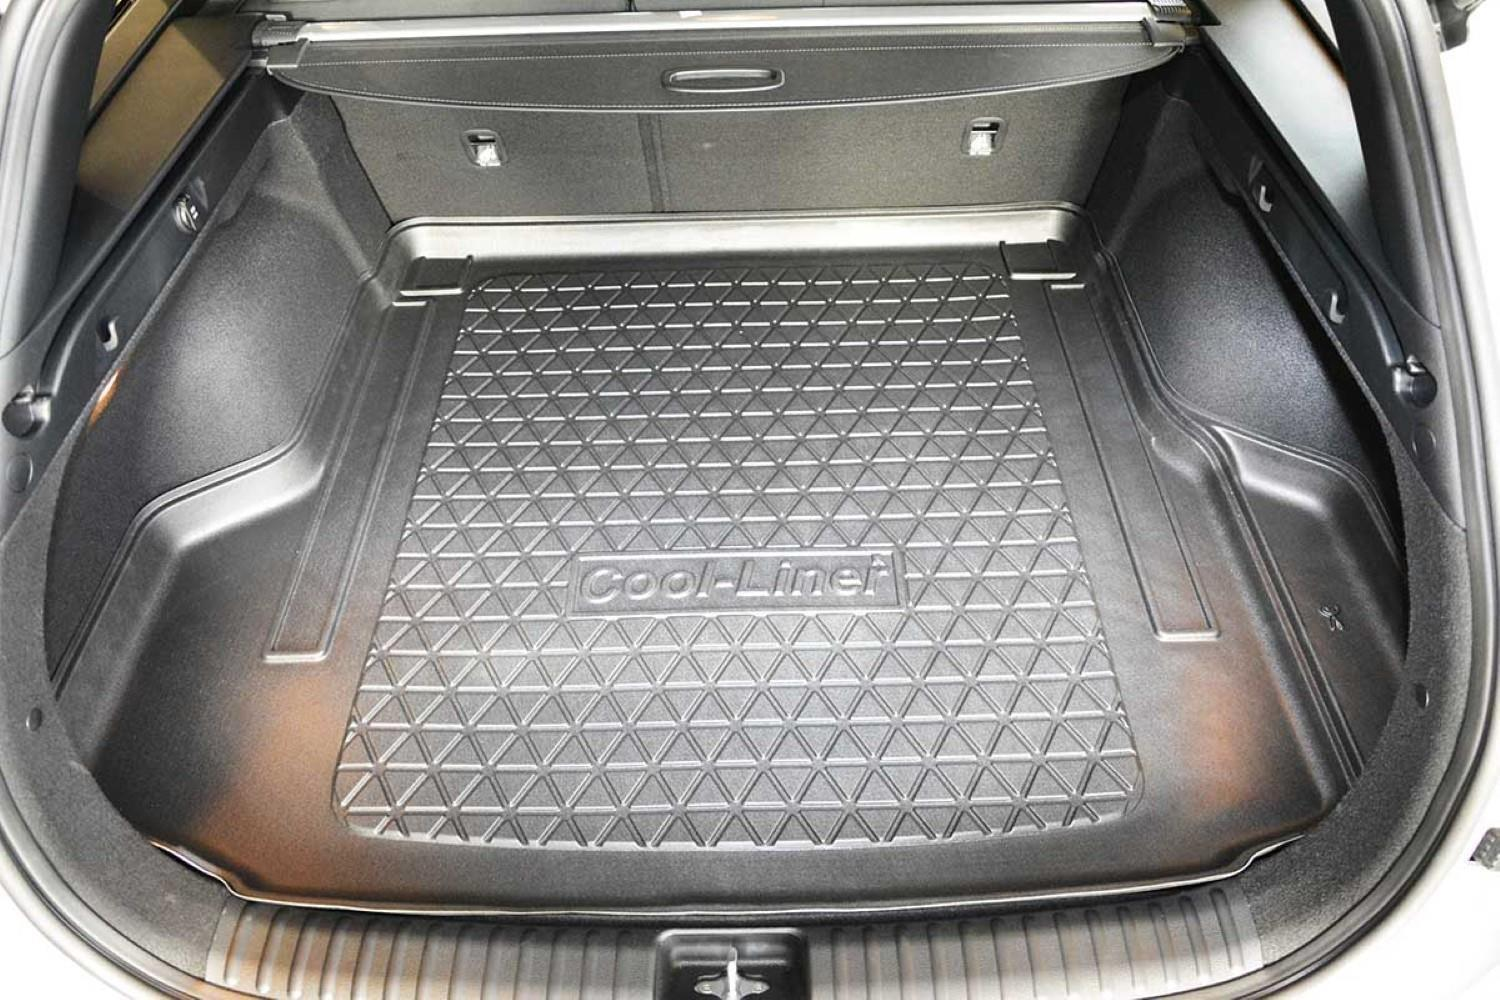 Estate Nomad Auto Tailored Fit Heavy Duty Durable Black Boot Liner Tray Mat Protector for Kia CeeD SW 12-18